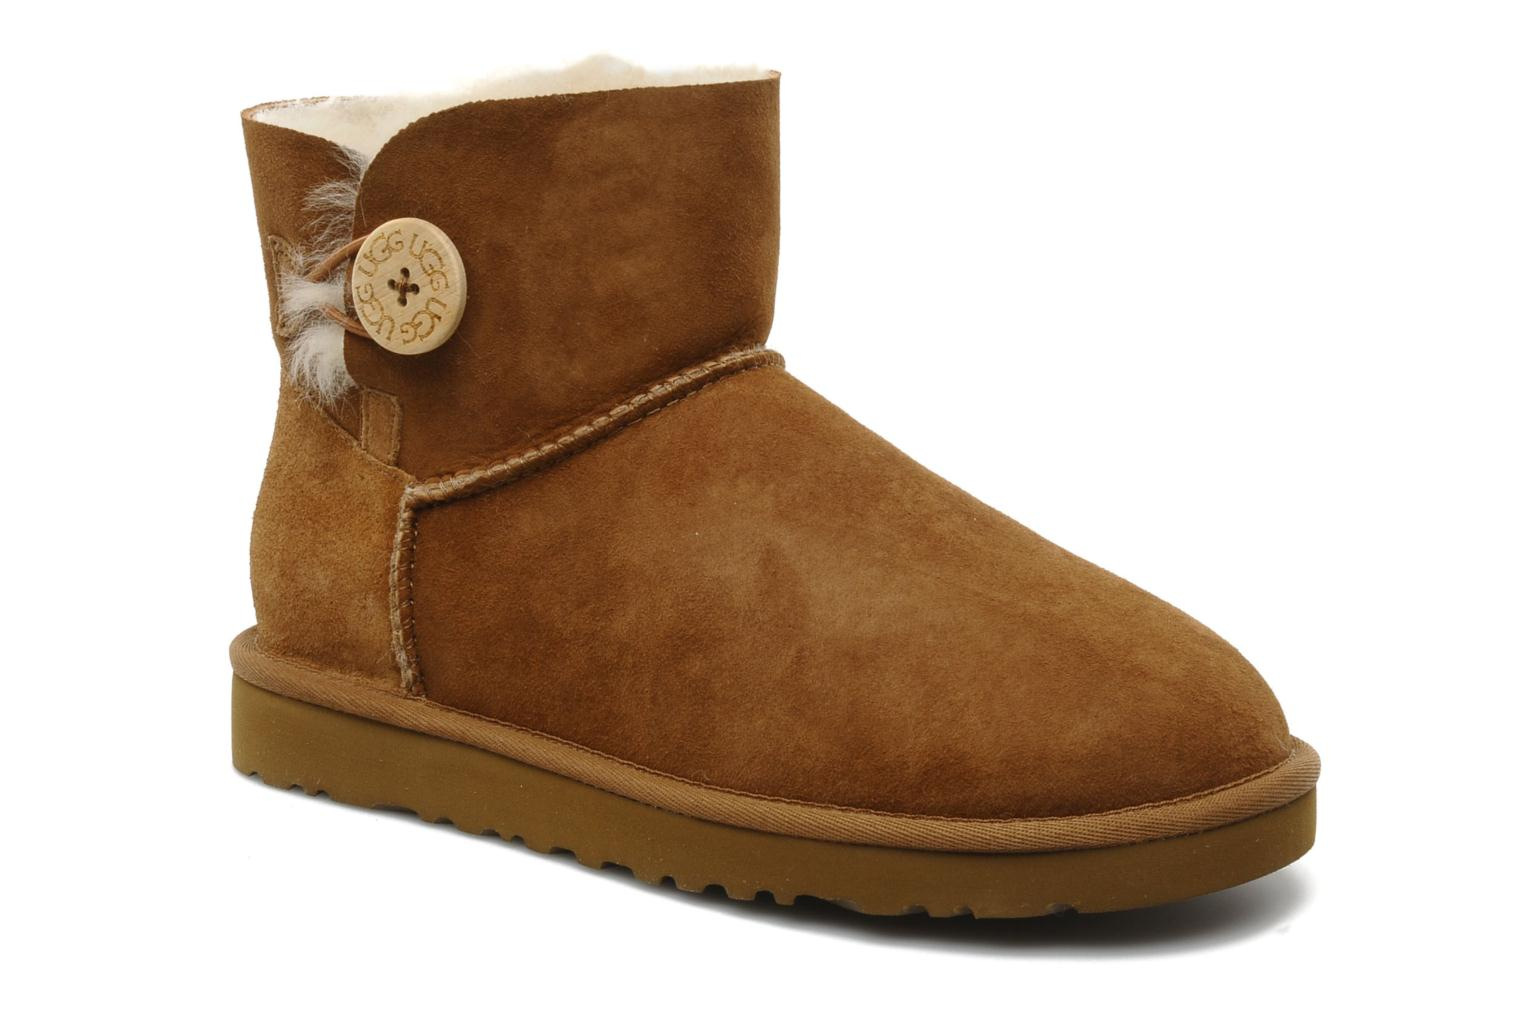 Bottines et boots UGG Mini bailey button Marron vue détail/paire